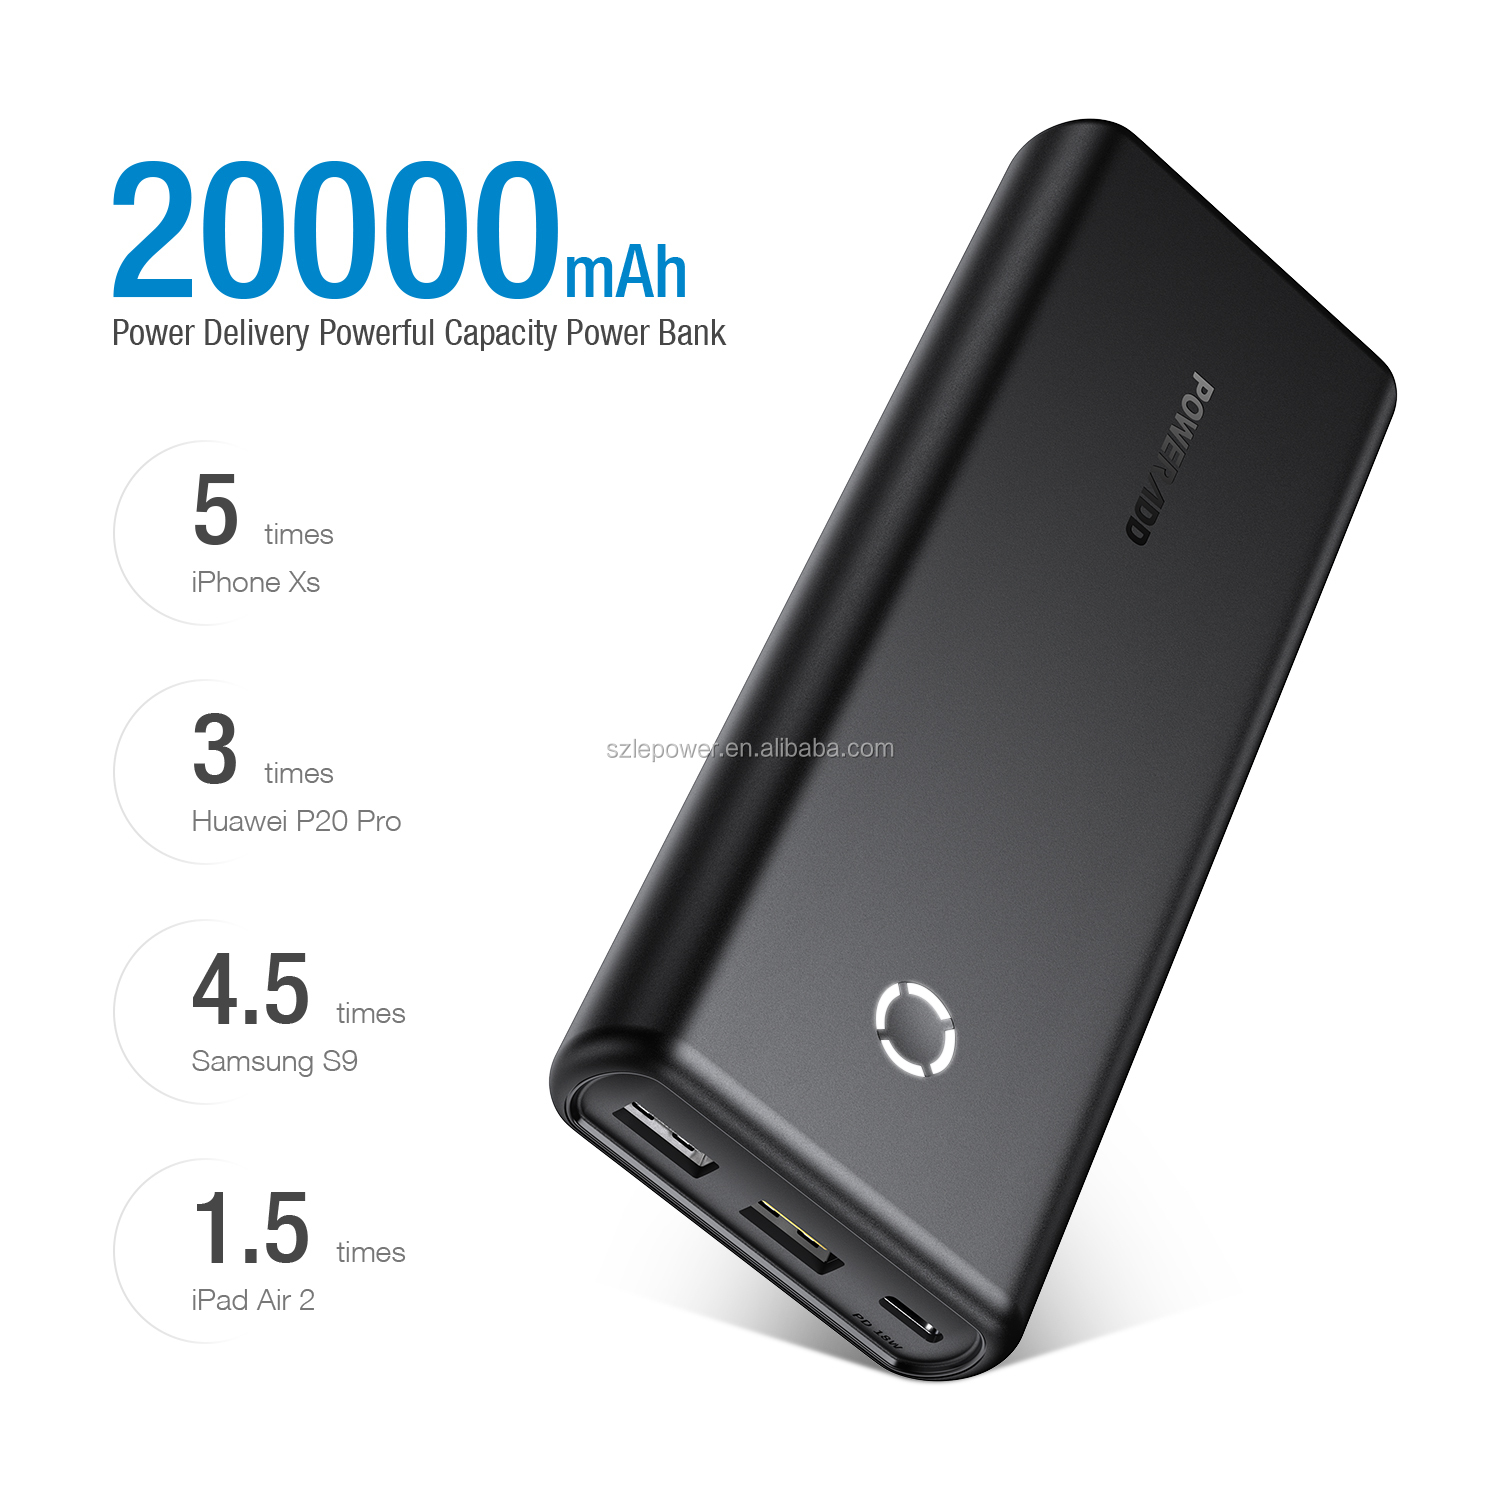 POWERADD EnergyCell 20000 Portable Charger,  18W 20000mAh External Battery Pack with USB C and 2 USB Ports